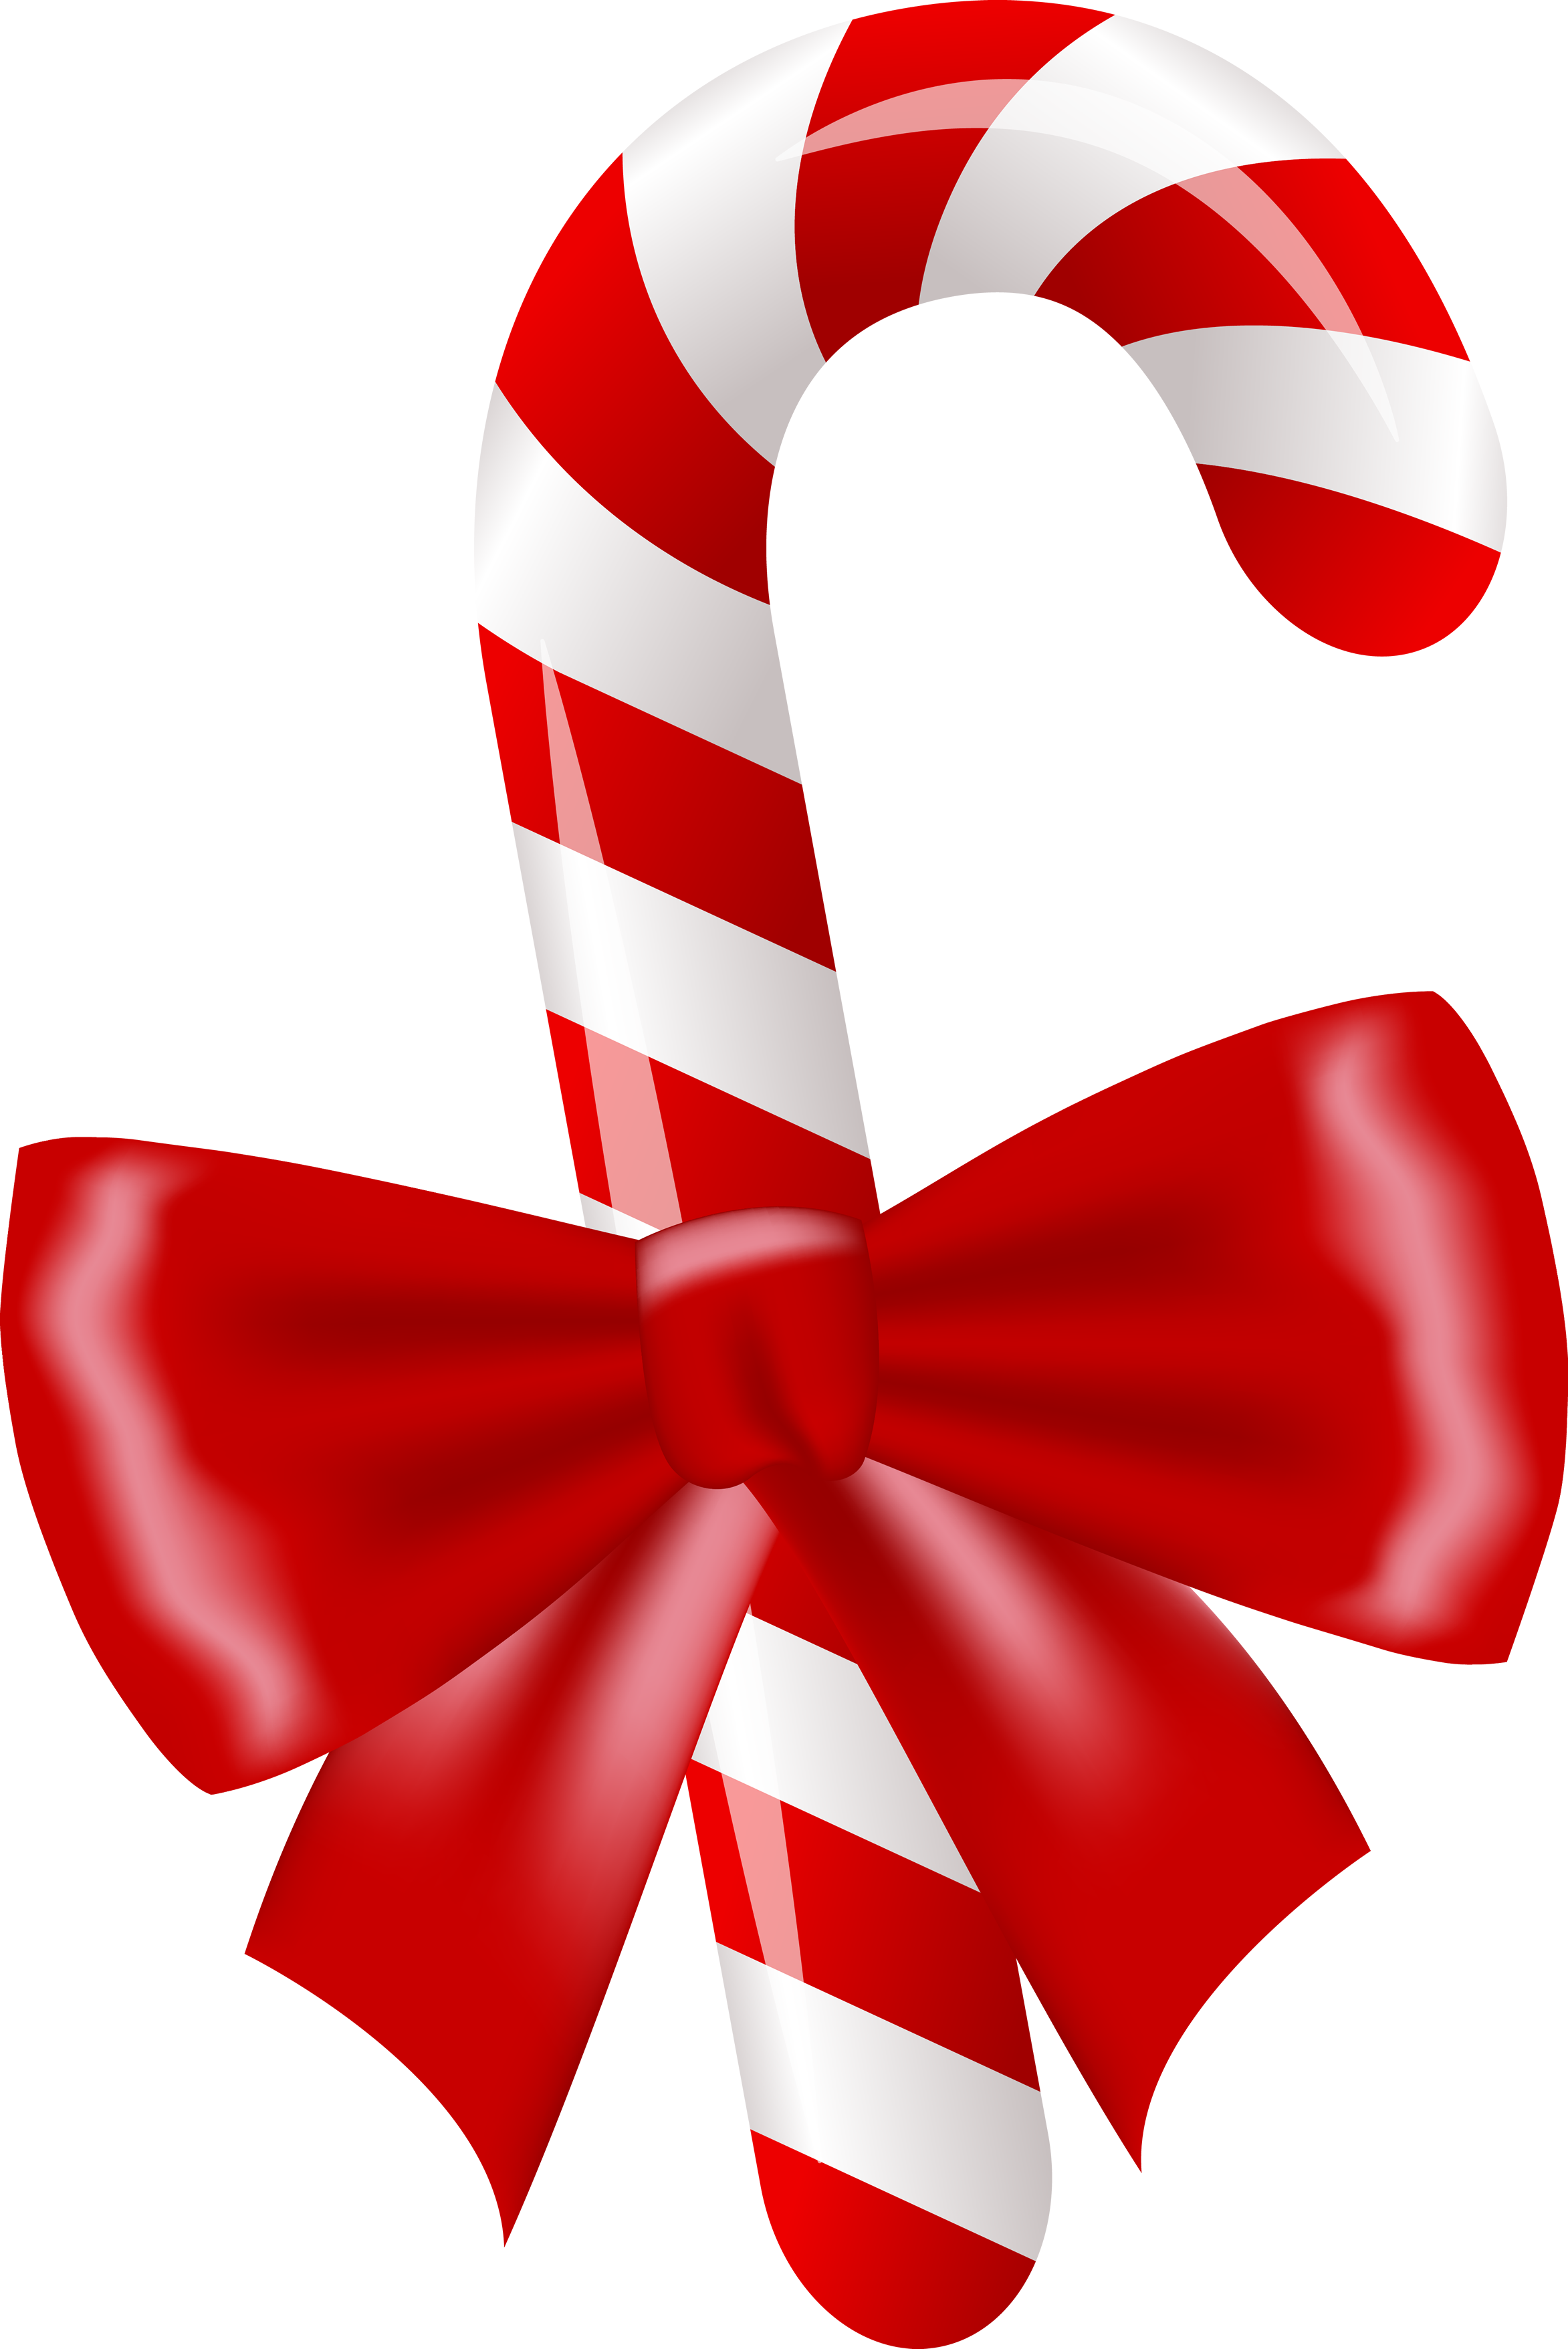 Christmas Png.Christmas Candy Png Image Purepng Free Transparent Cc0